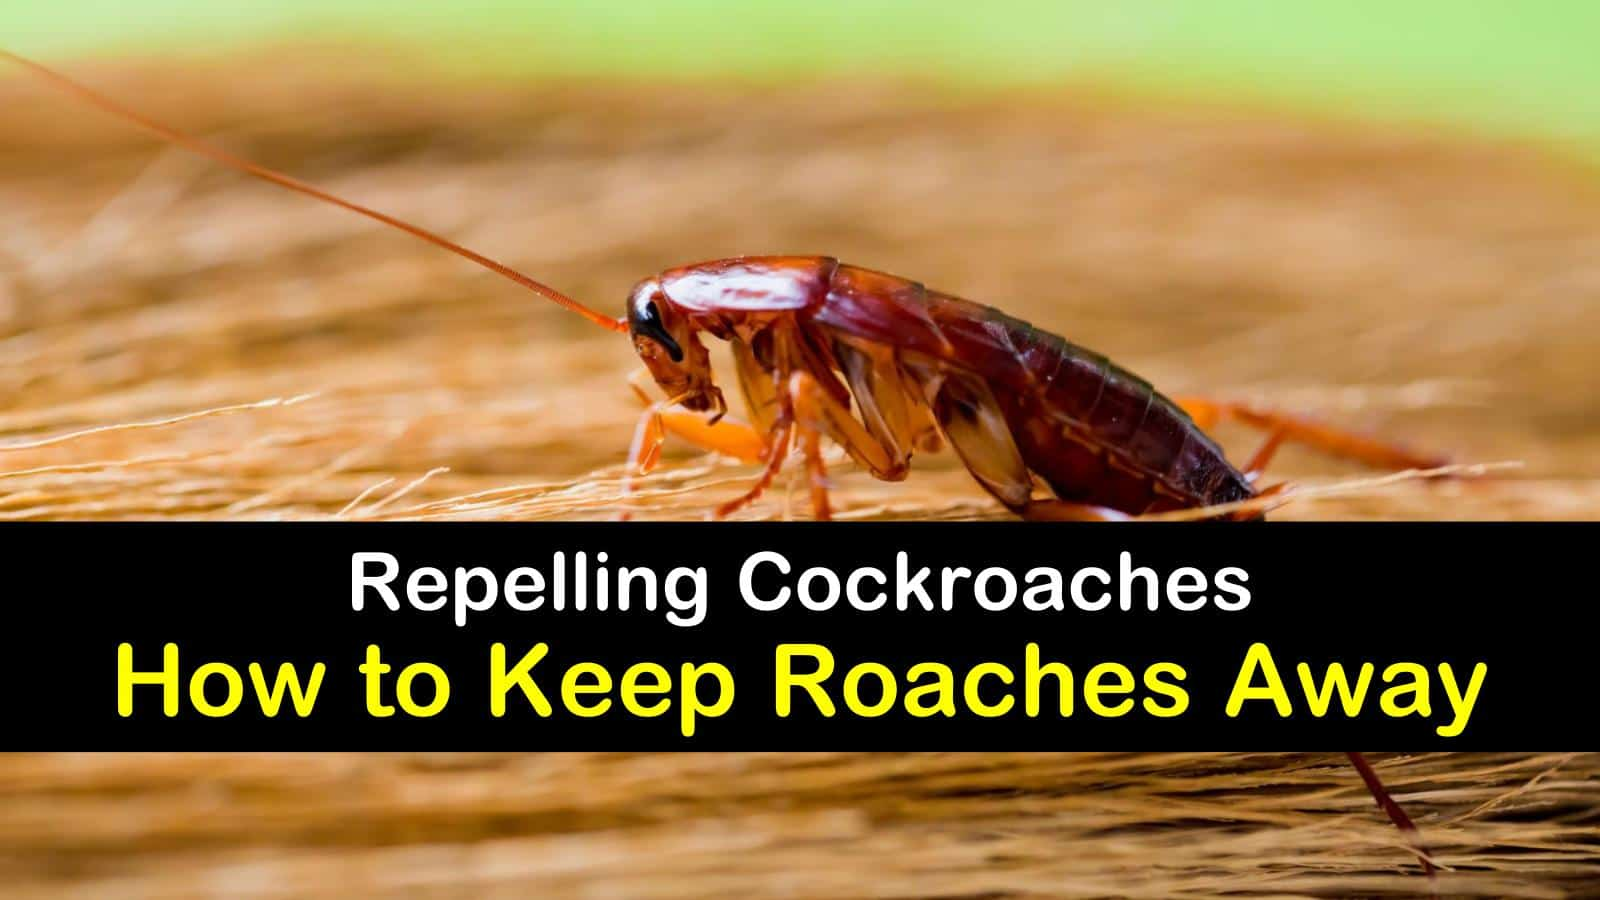 how to keep roaches away titleimg1